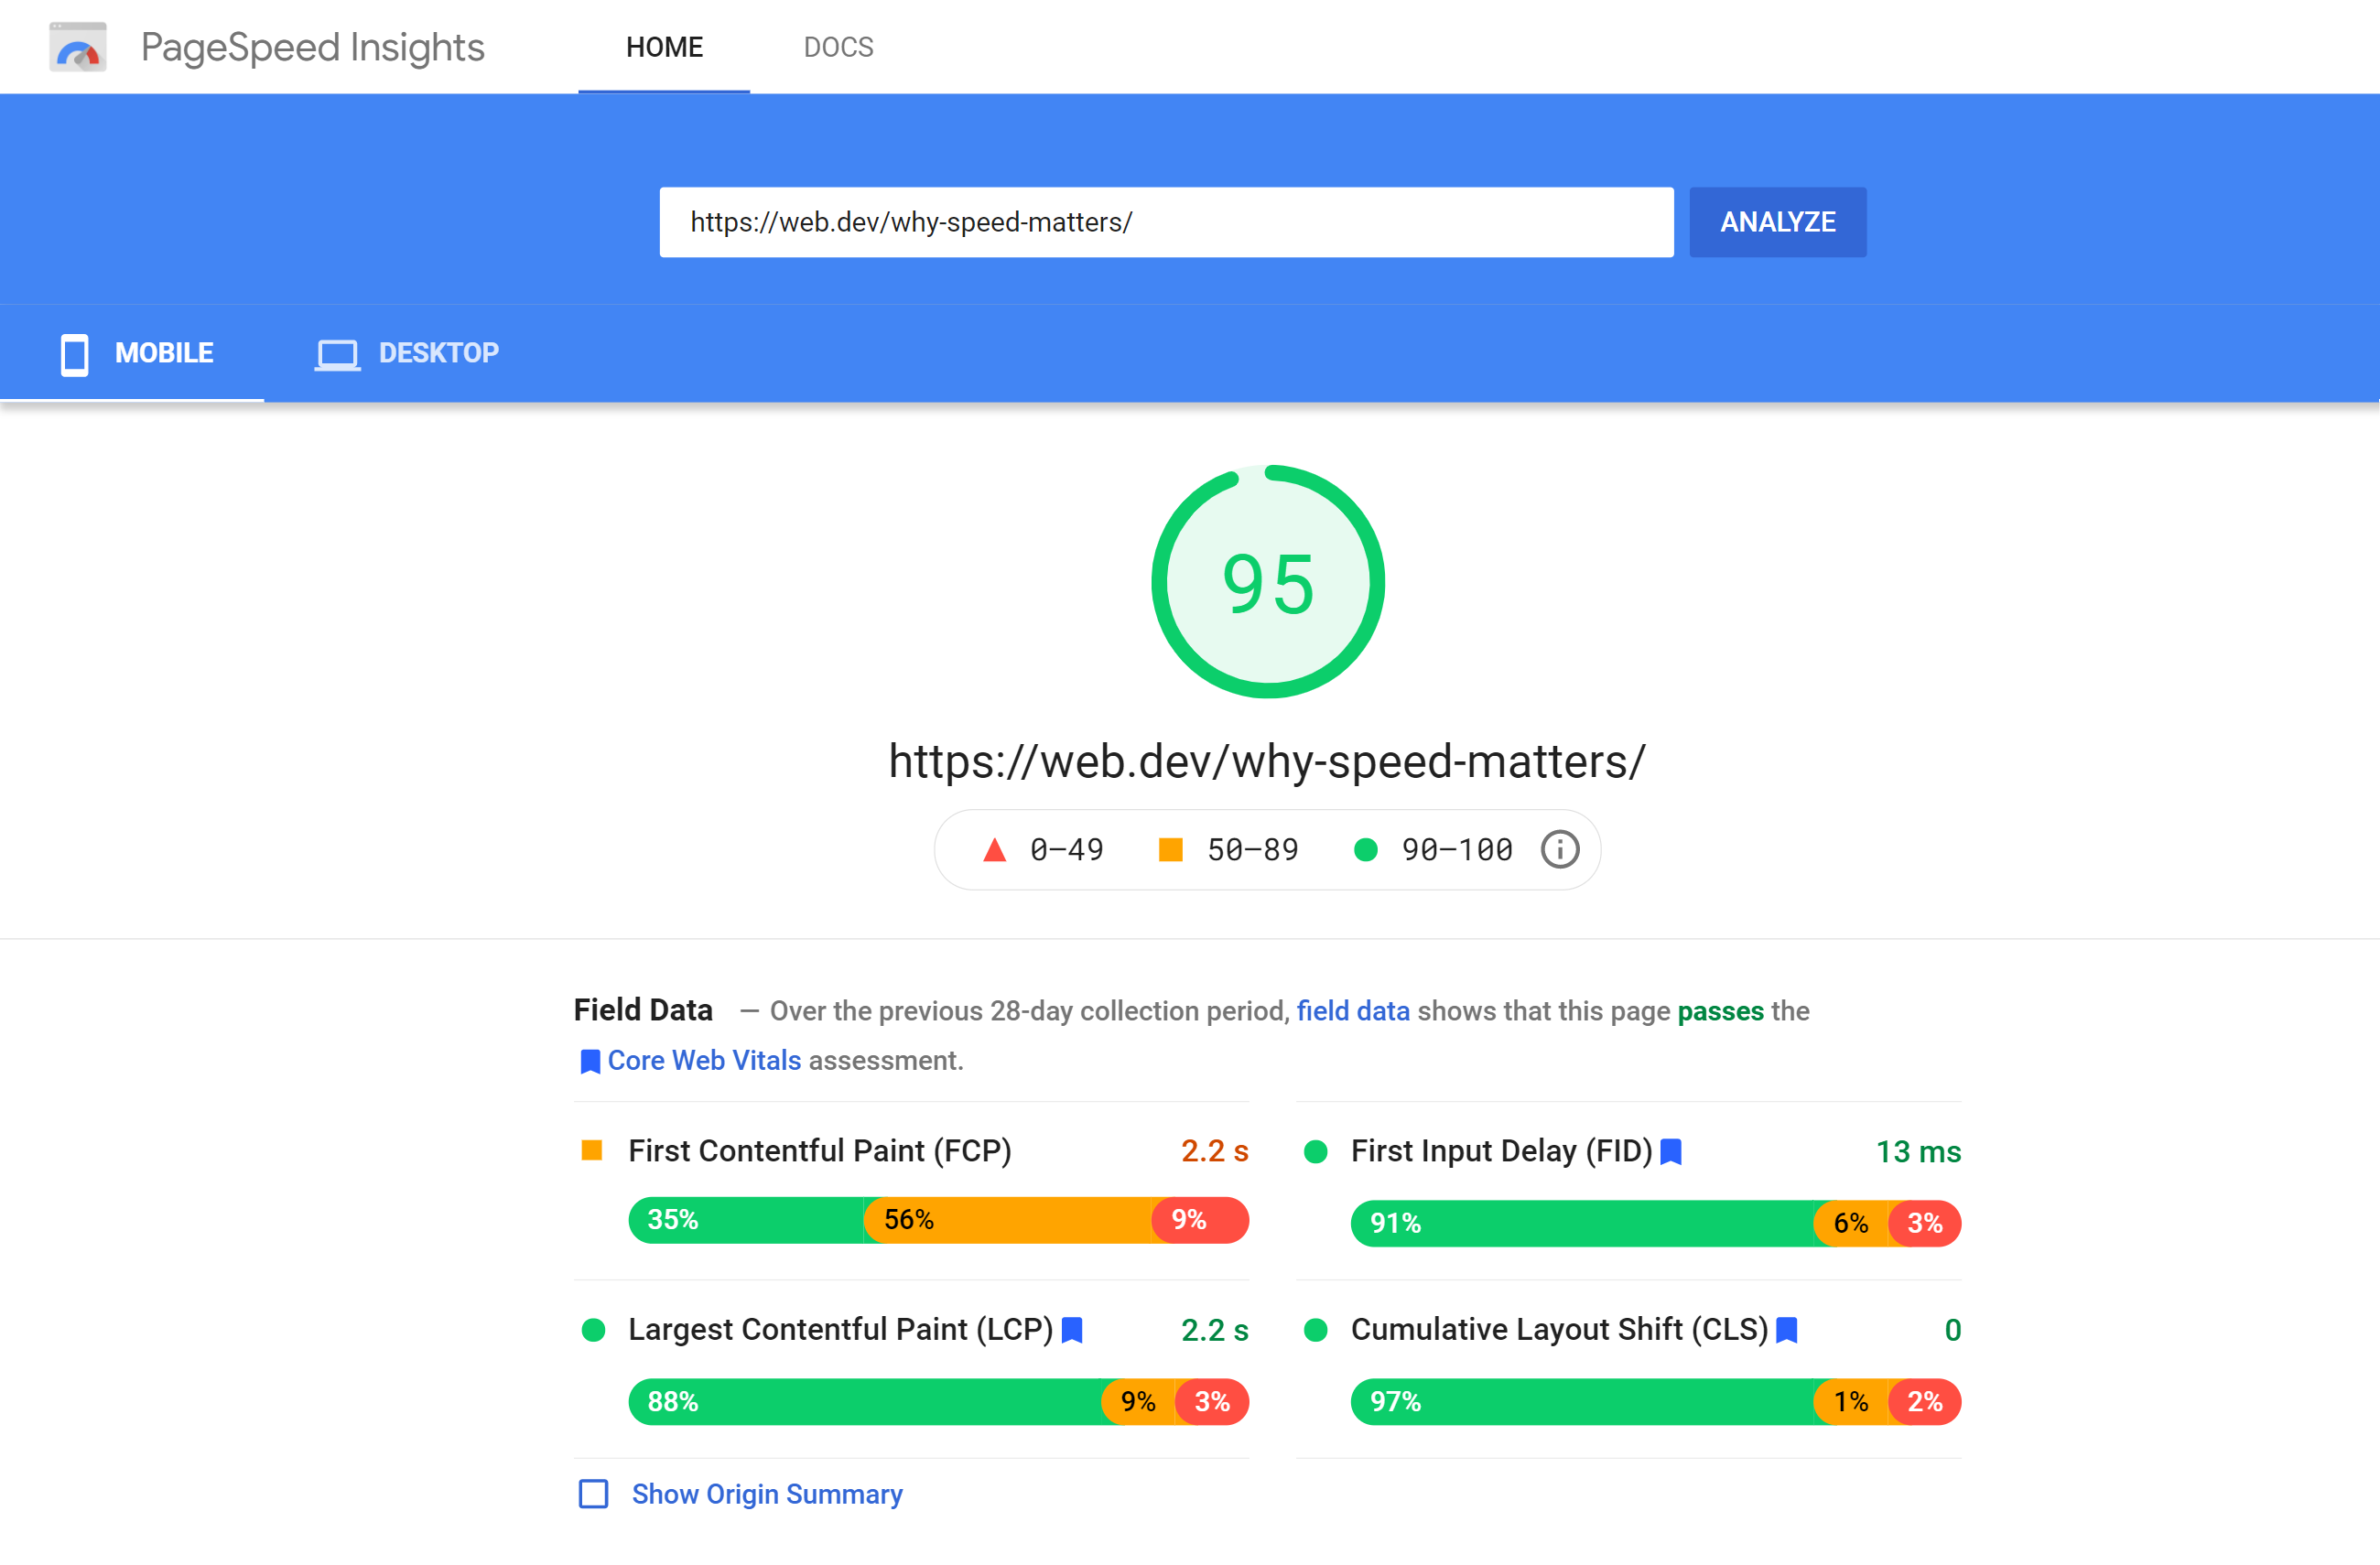 Field data from PageSpeed Insights